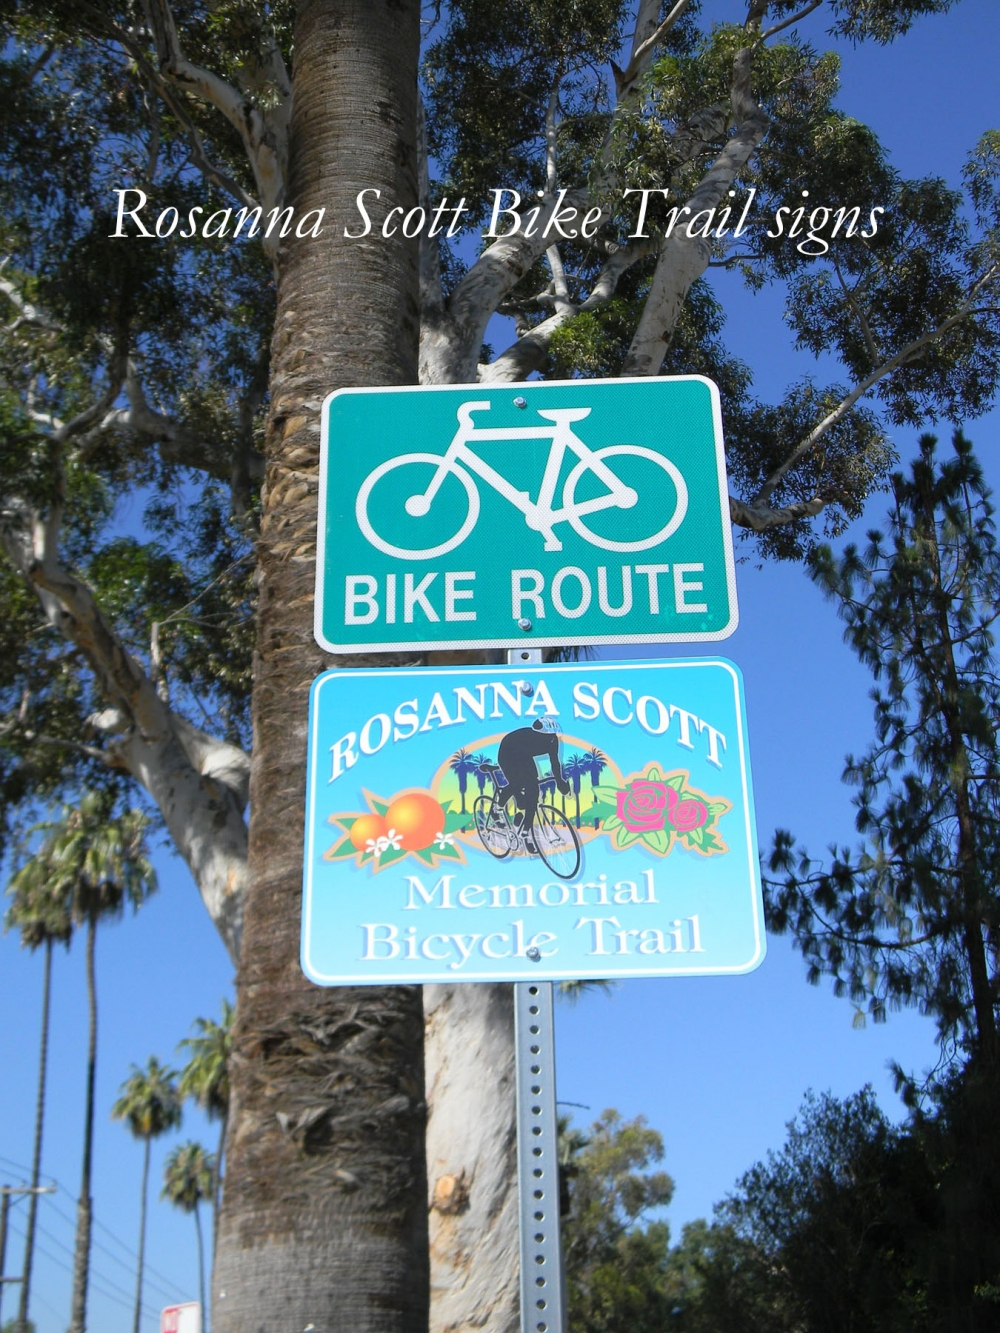 Rosanna Scott bike trail signs